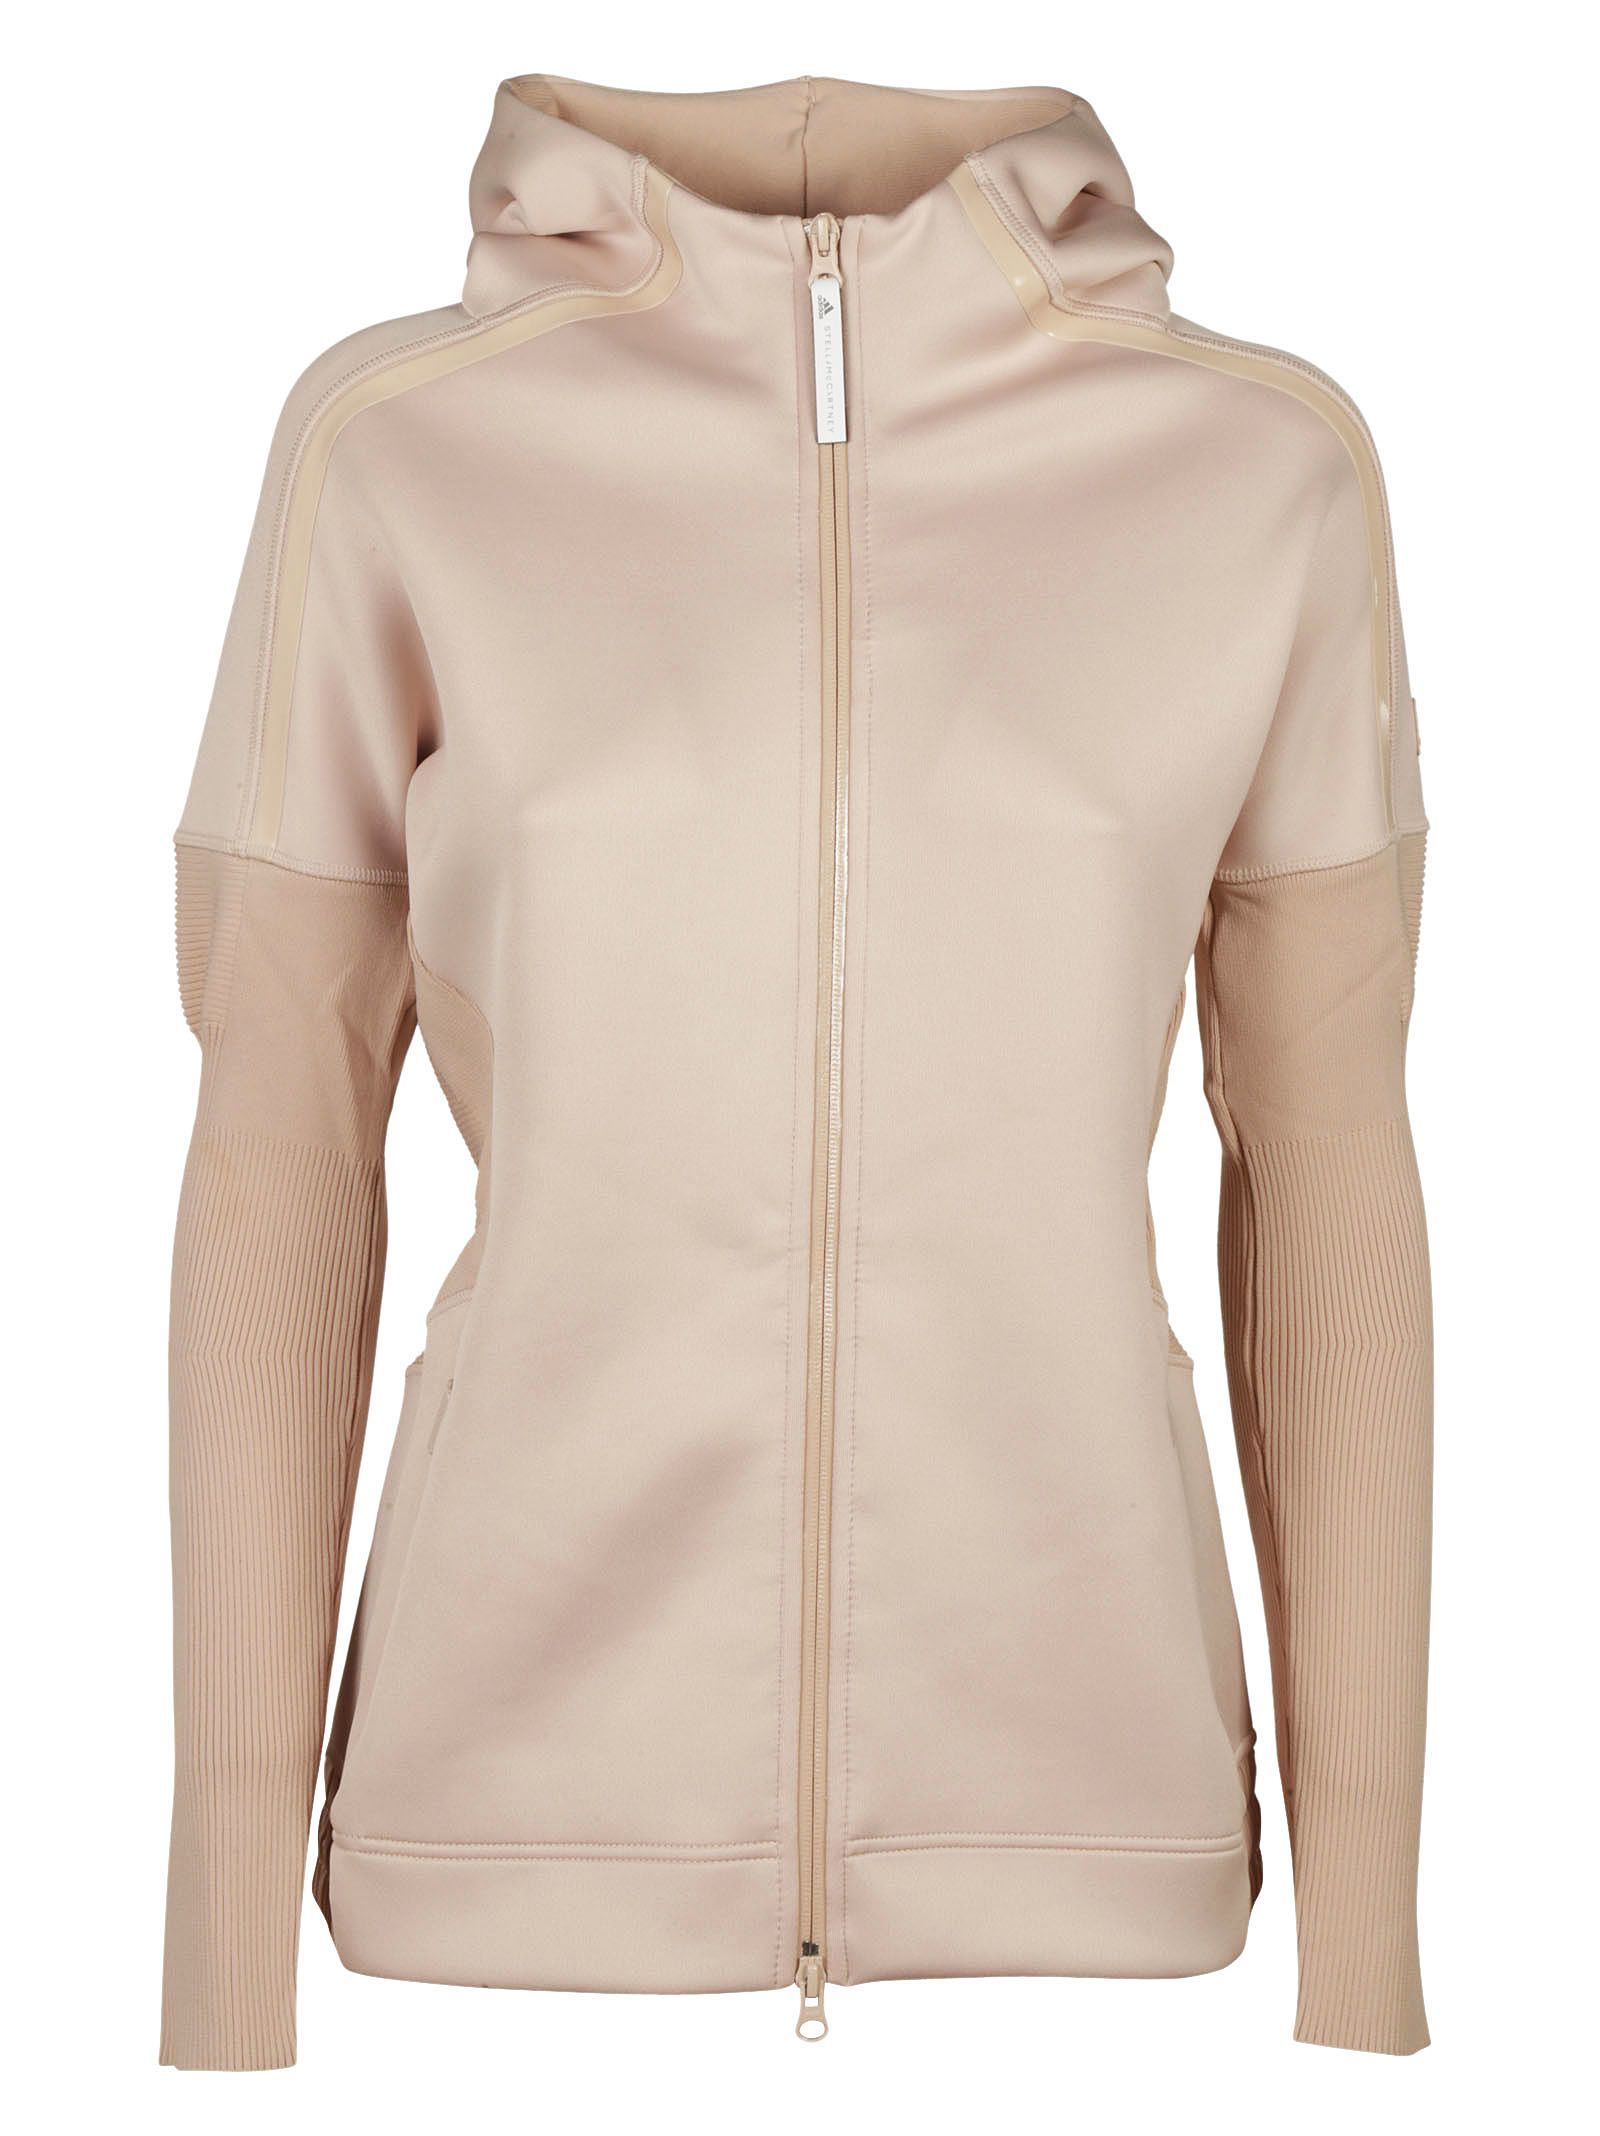 TOPWEAR - Sweatshirts adidas by Stella McCartney Buy Cheap Excellent Cheap Discounts Low Cost Get To Buy For Nice VnL6x7Y